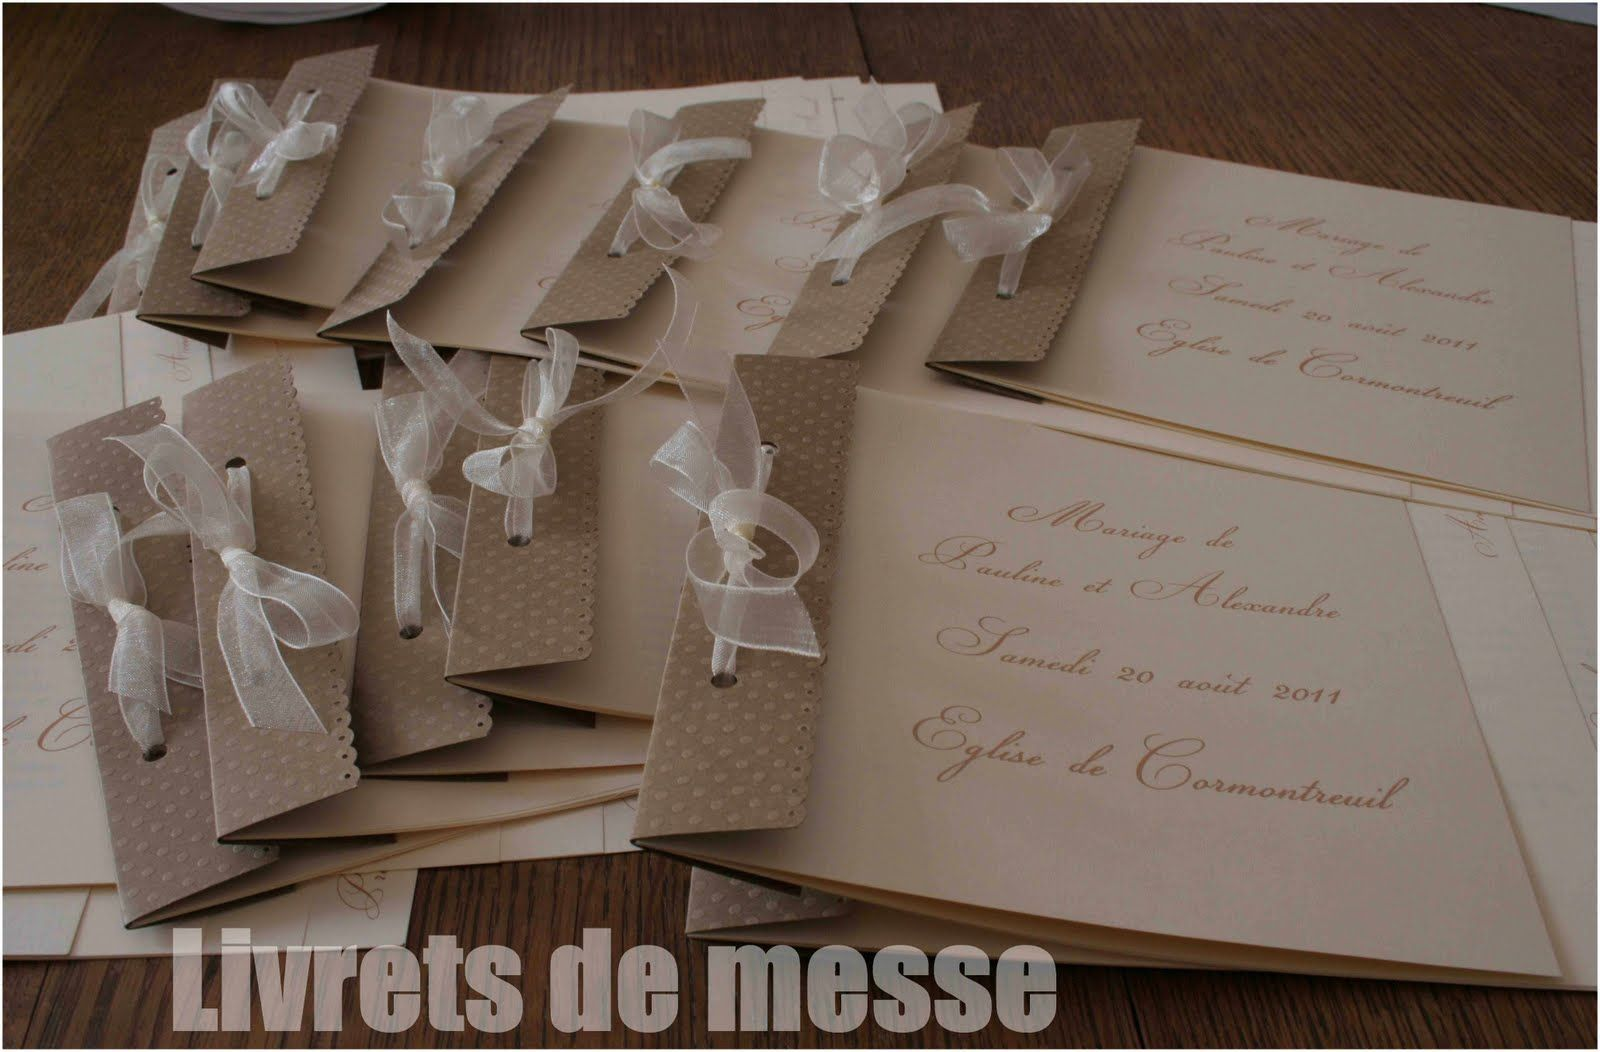 1000 images about livret mariage on pinterest search tossed and fan programs - Modle Livret De Messe Mariage